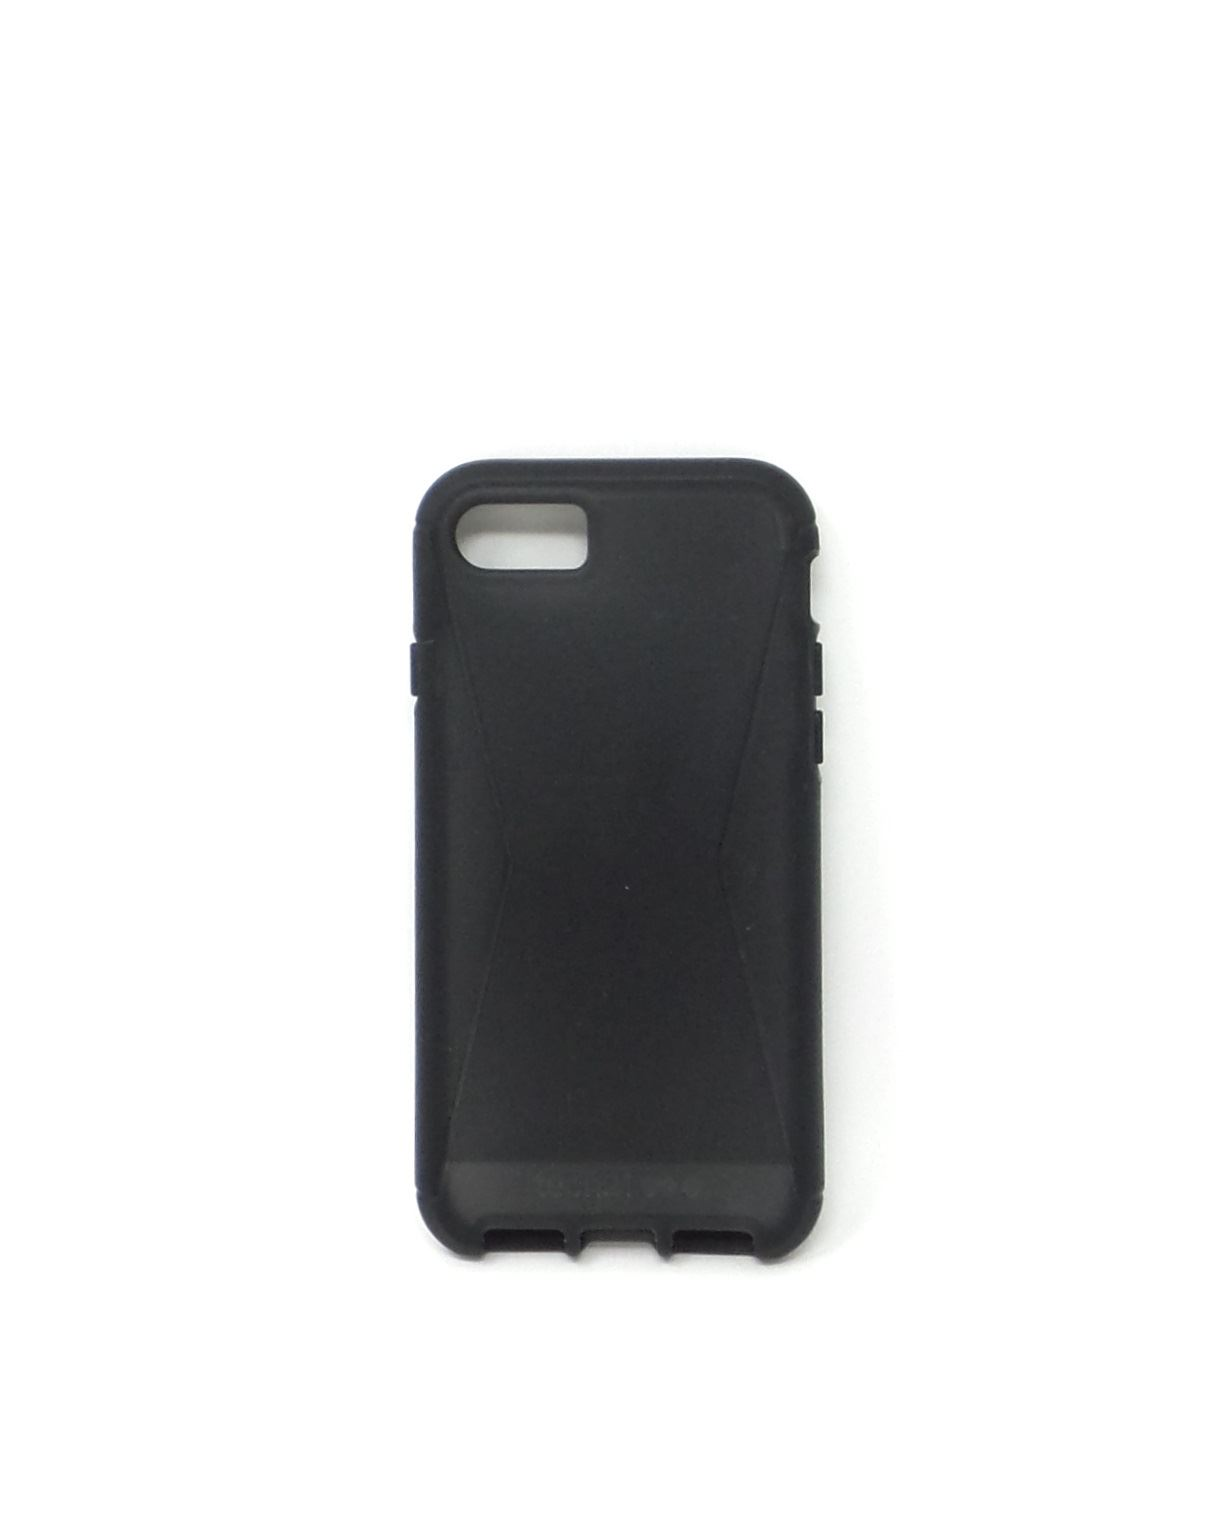 outlet store 2c86a e04fa Details about Tech21 Evo Tactical Case For Apple iPhone 7 / 8 T21-5396 Black